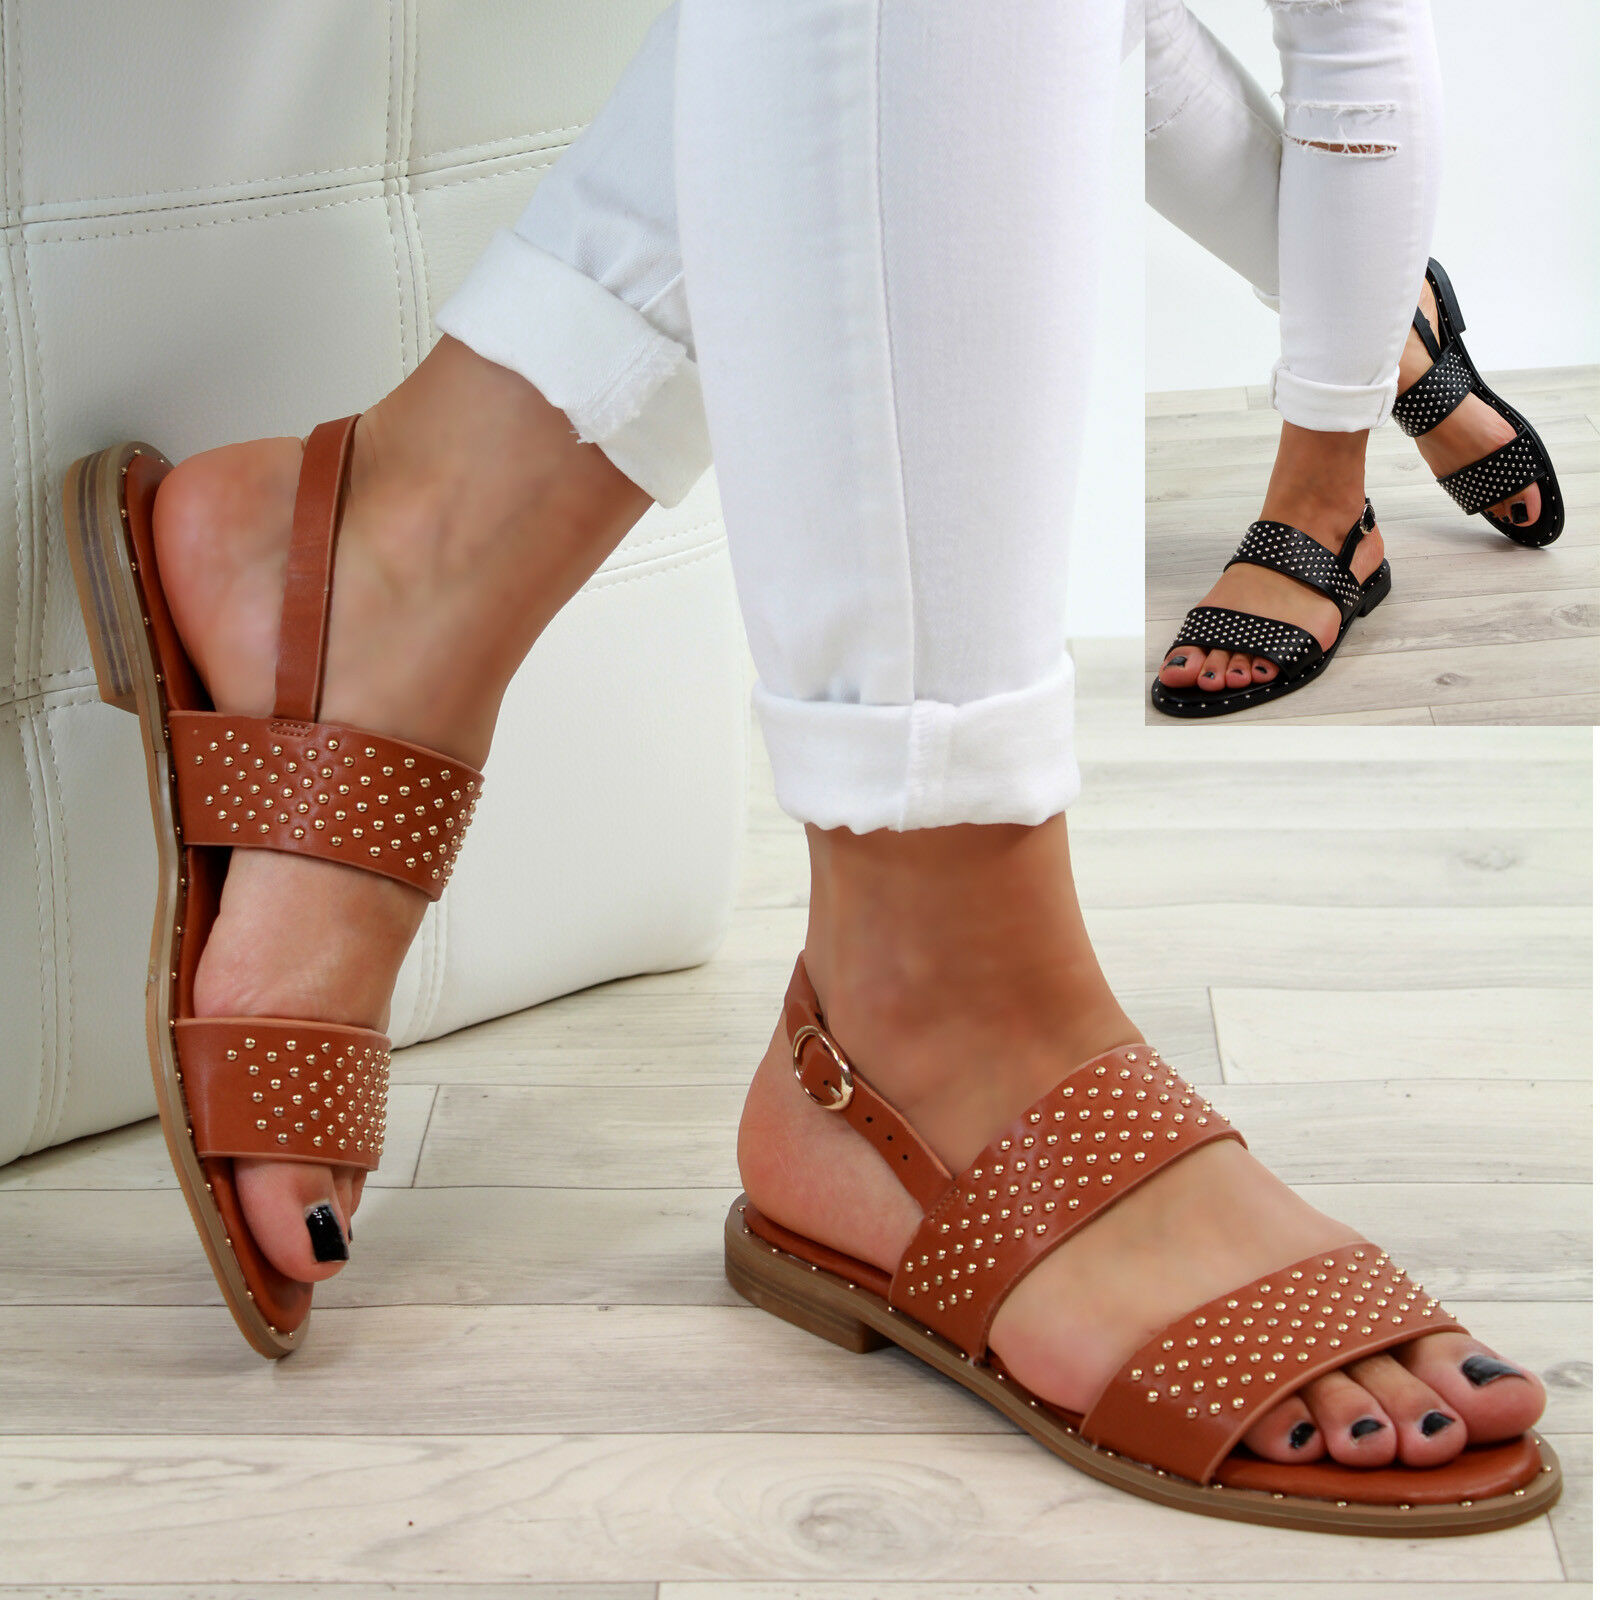 New Womens Ankle Flat Sandals Studs Buckle Ankle Womens Strap Comfy Summer Shoes Sizes 3-8 d15b31